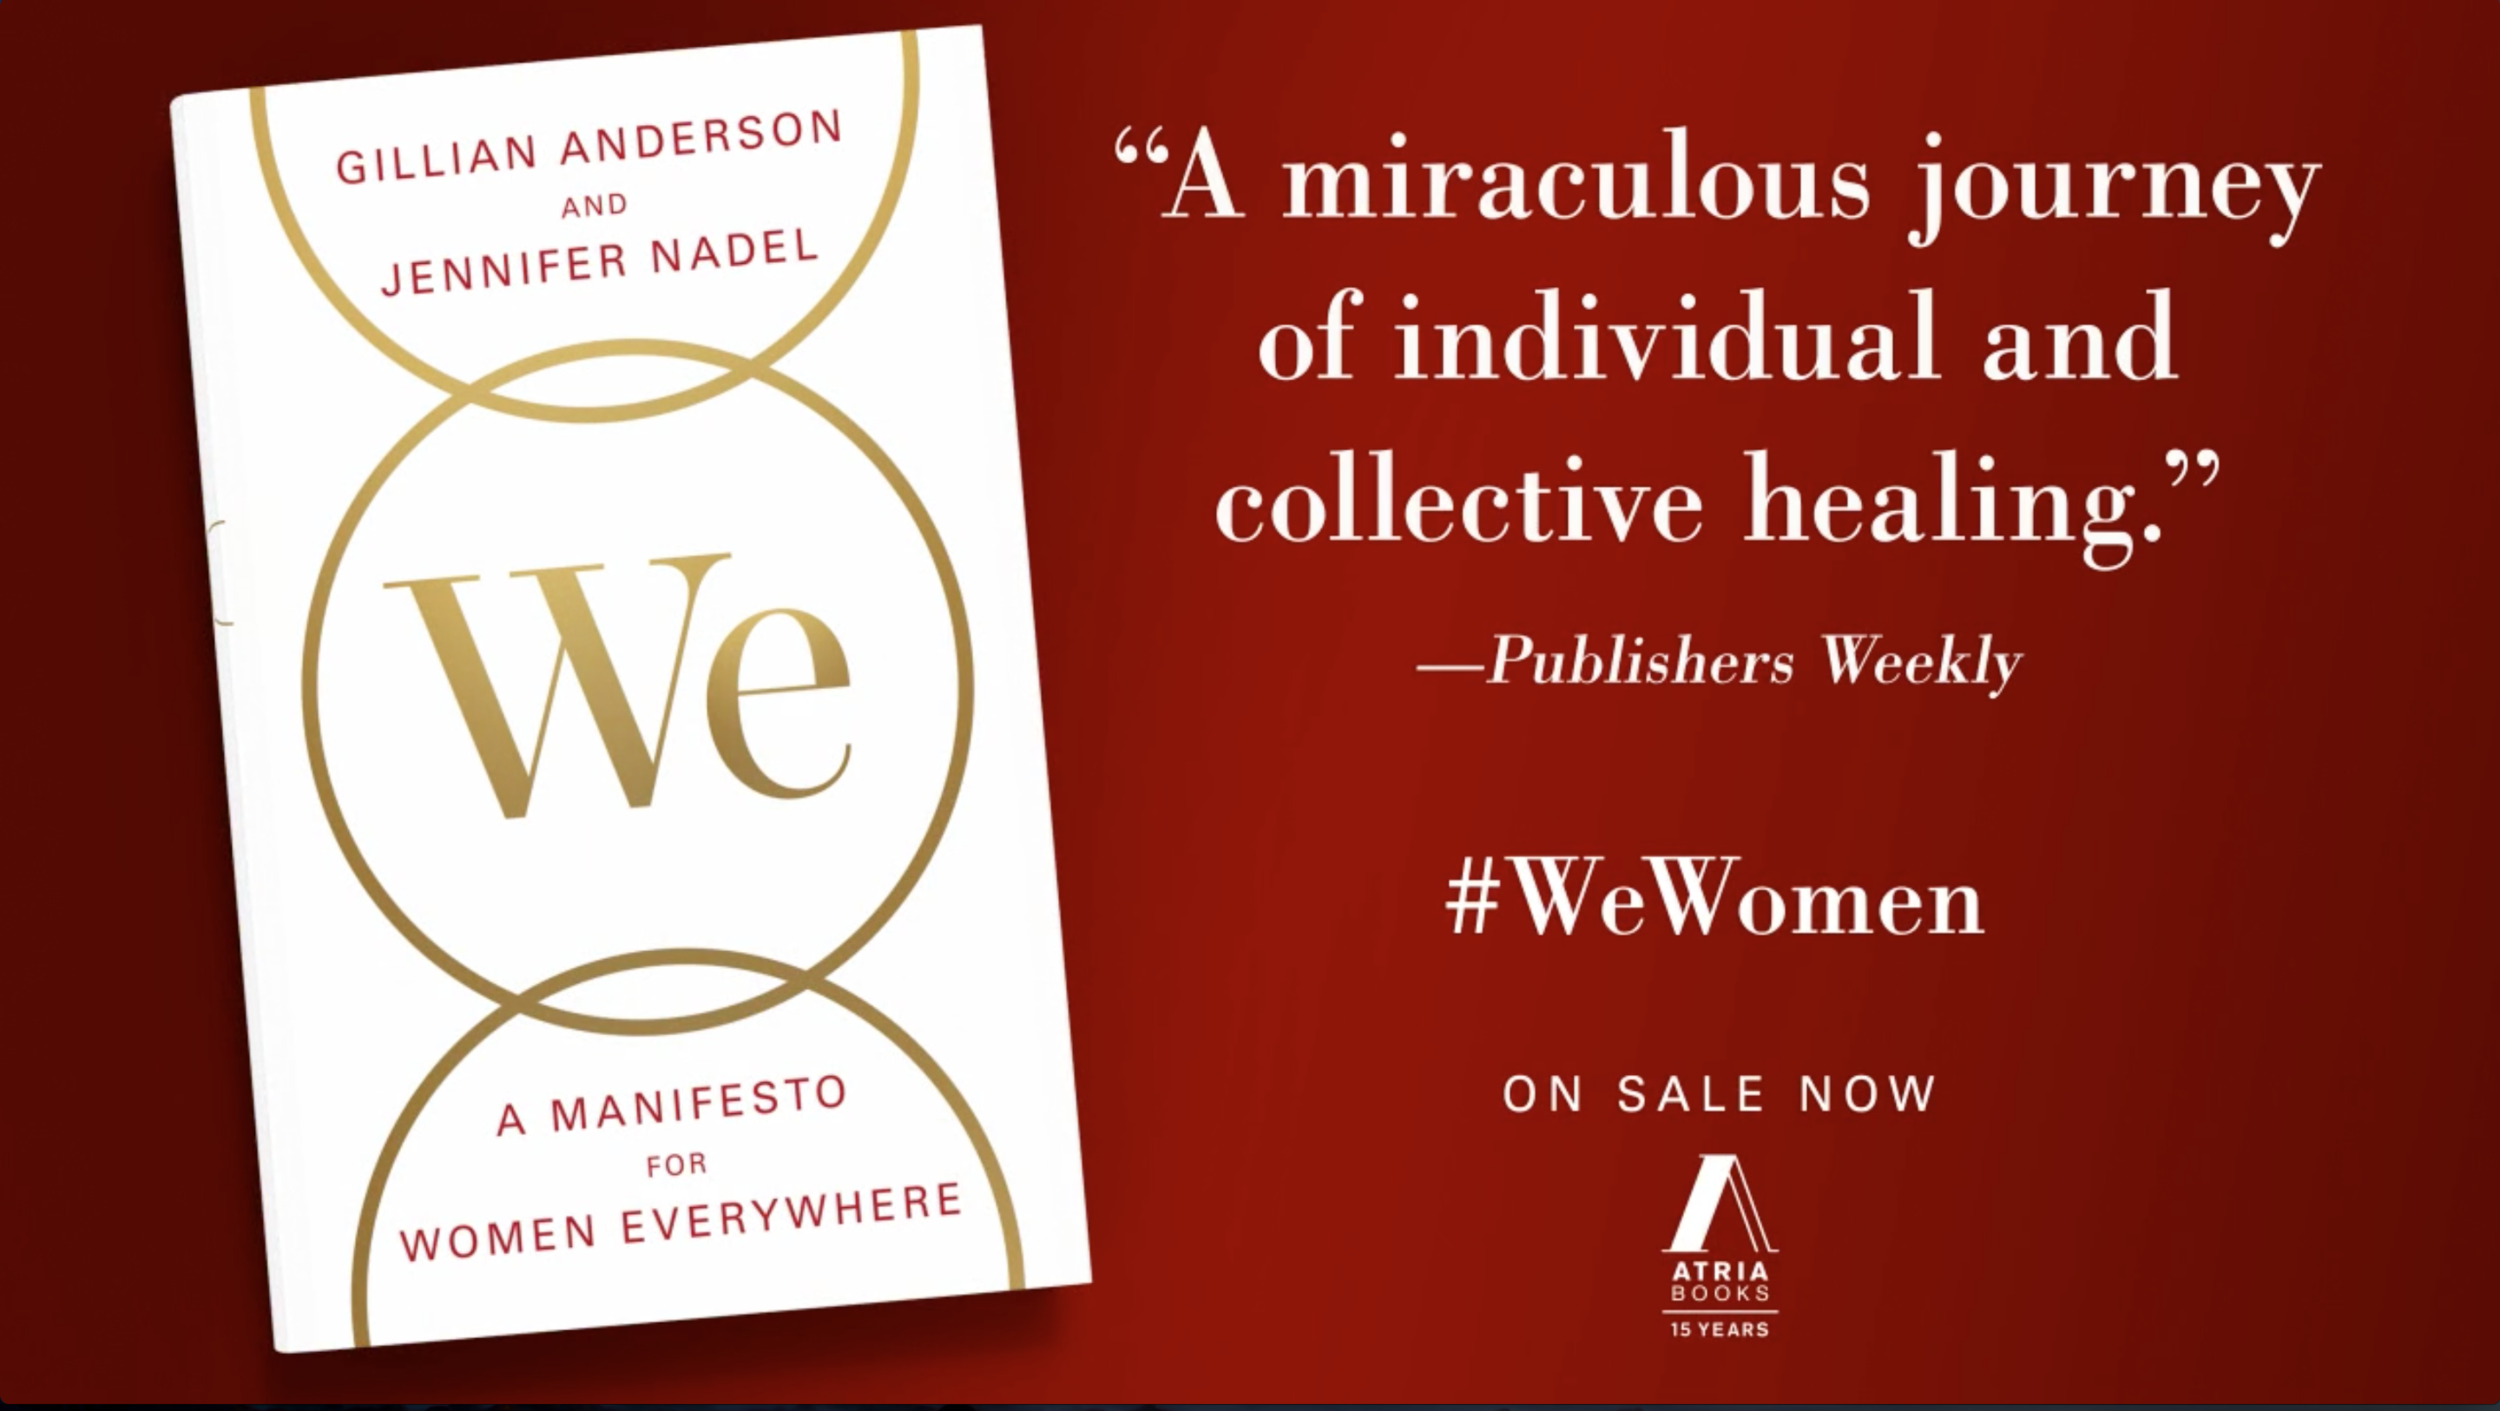 WE- The Manifesto for Women Everywhere - creative director, art director and designer for video and digital .